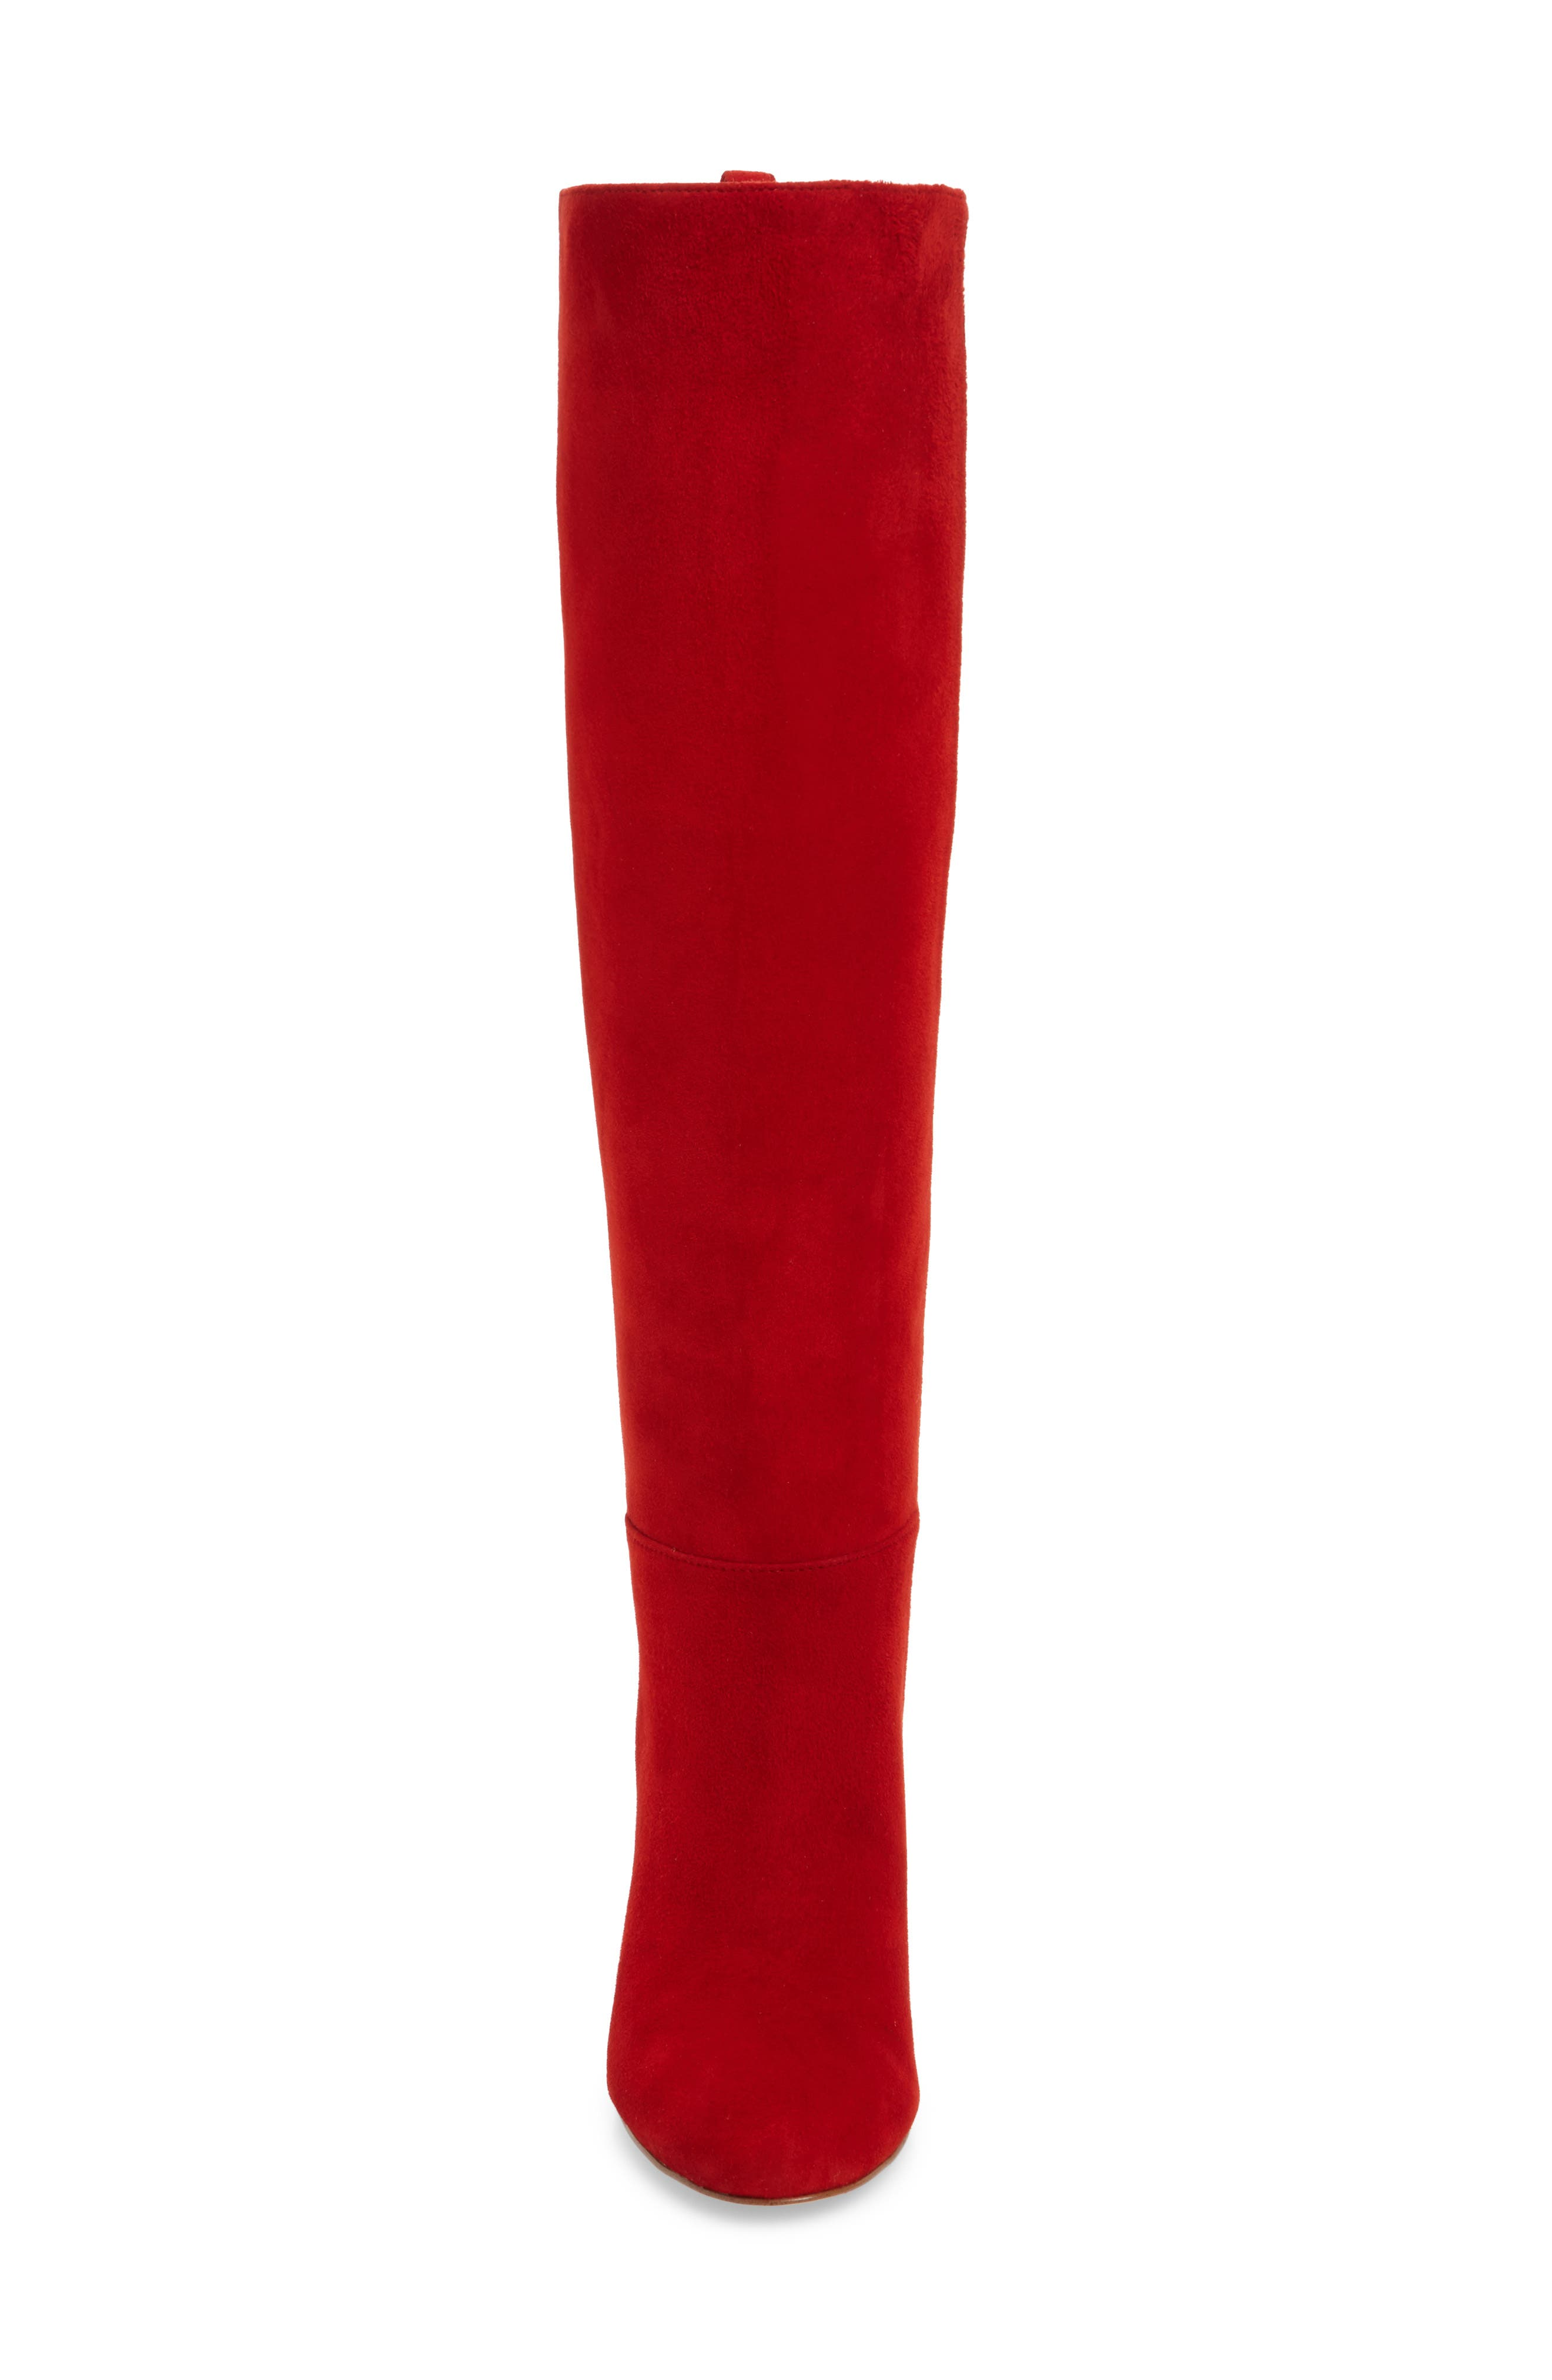 Caprice Knee-High Boot,                             Alternate thumbnail 4, color,                             CANDY RED SUEDE